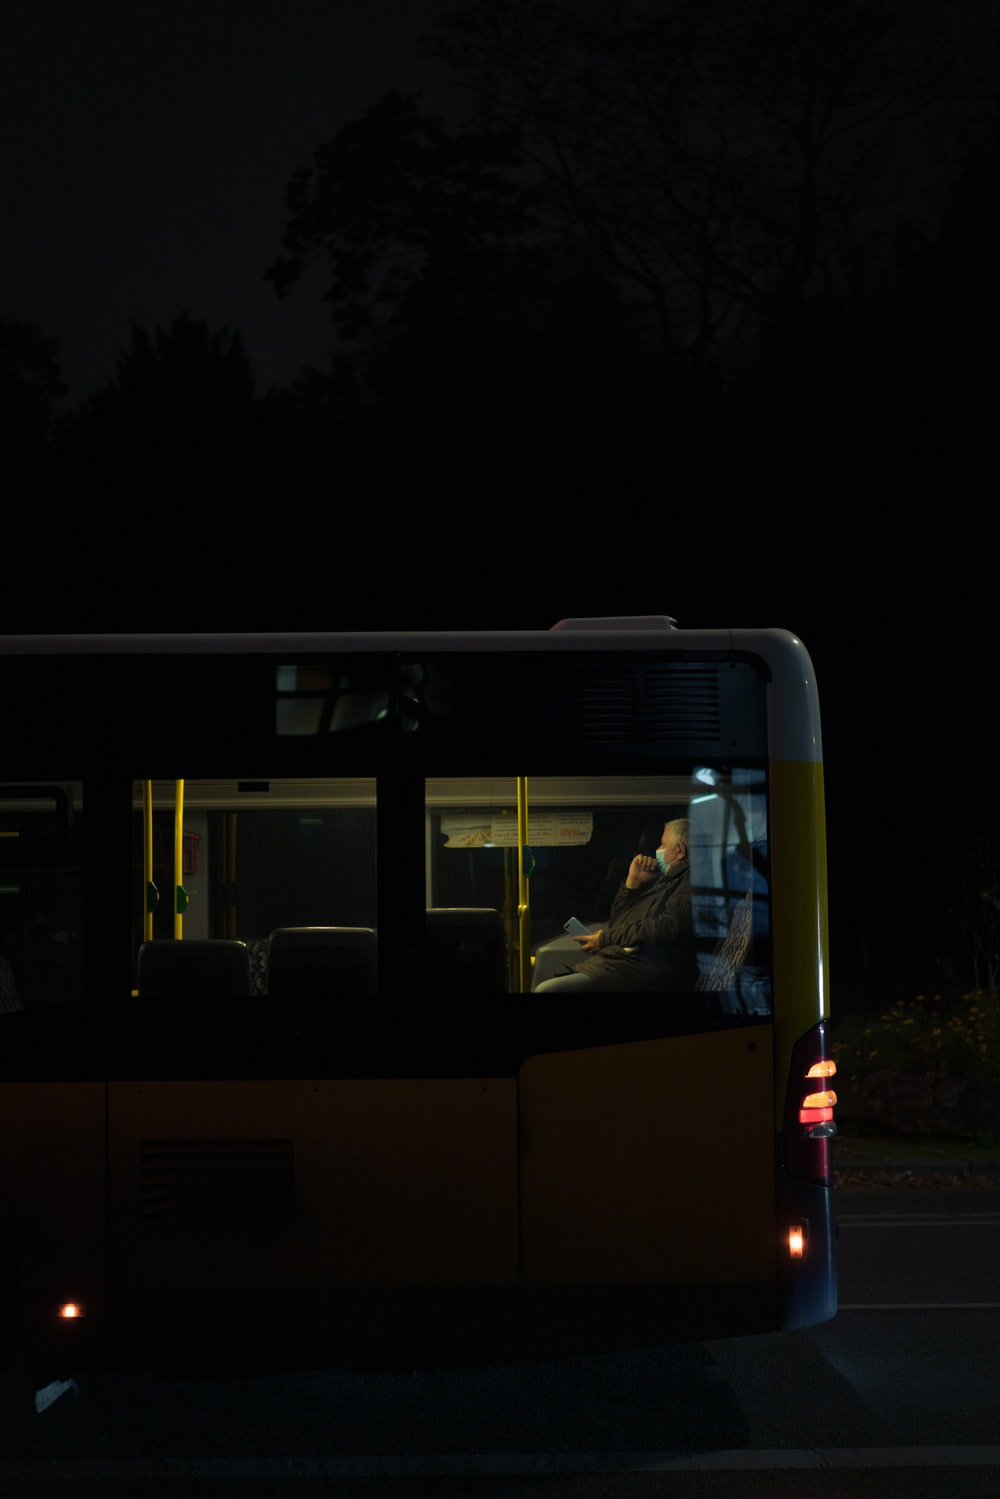 white and blue bus on road during night time